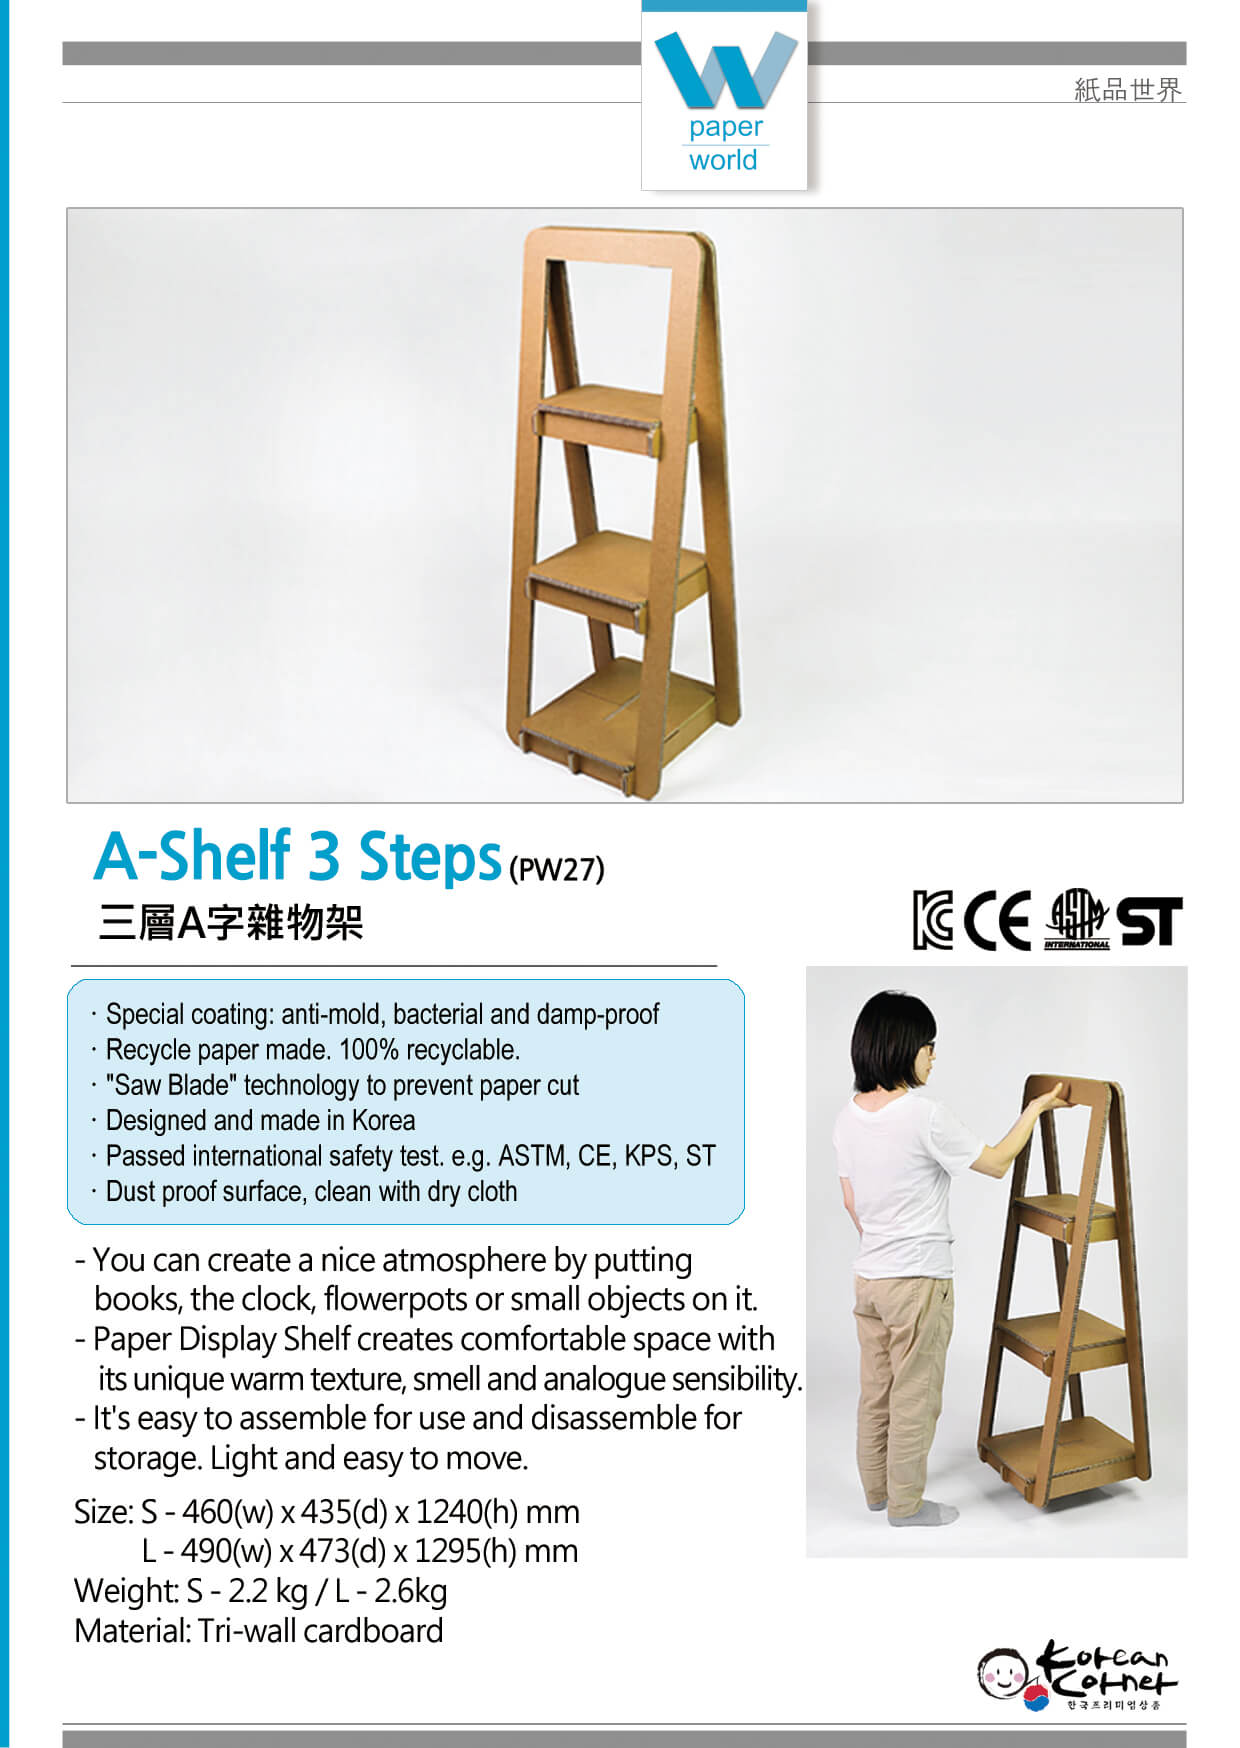 A-Shelf 3 Steps